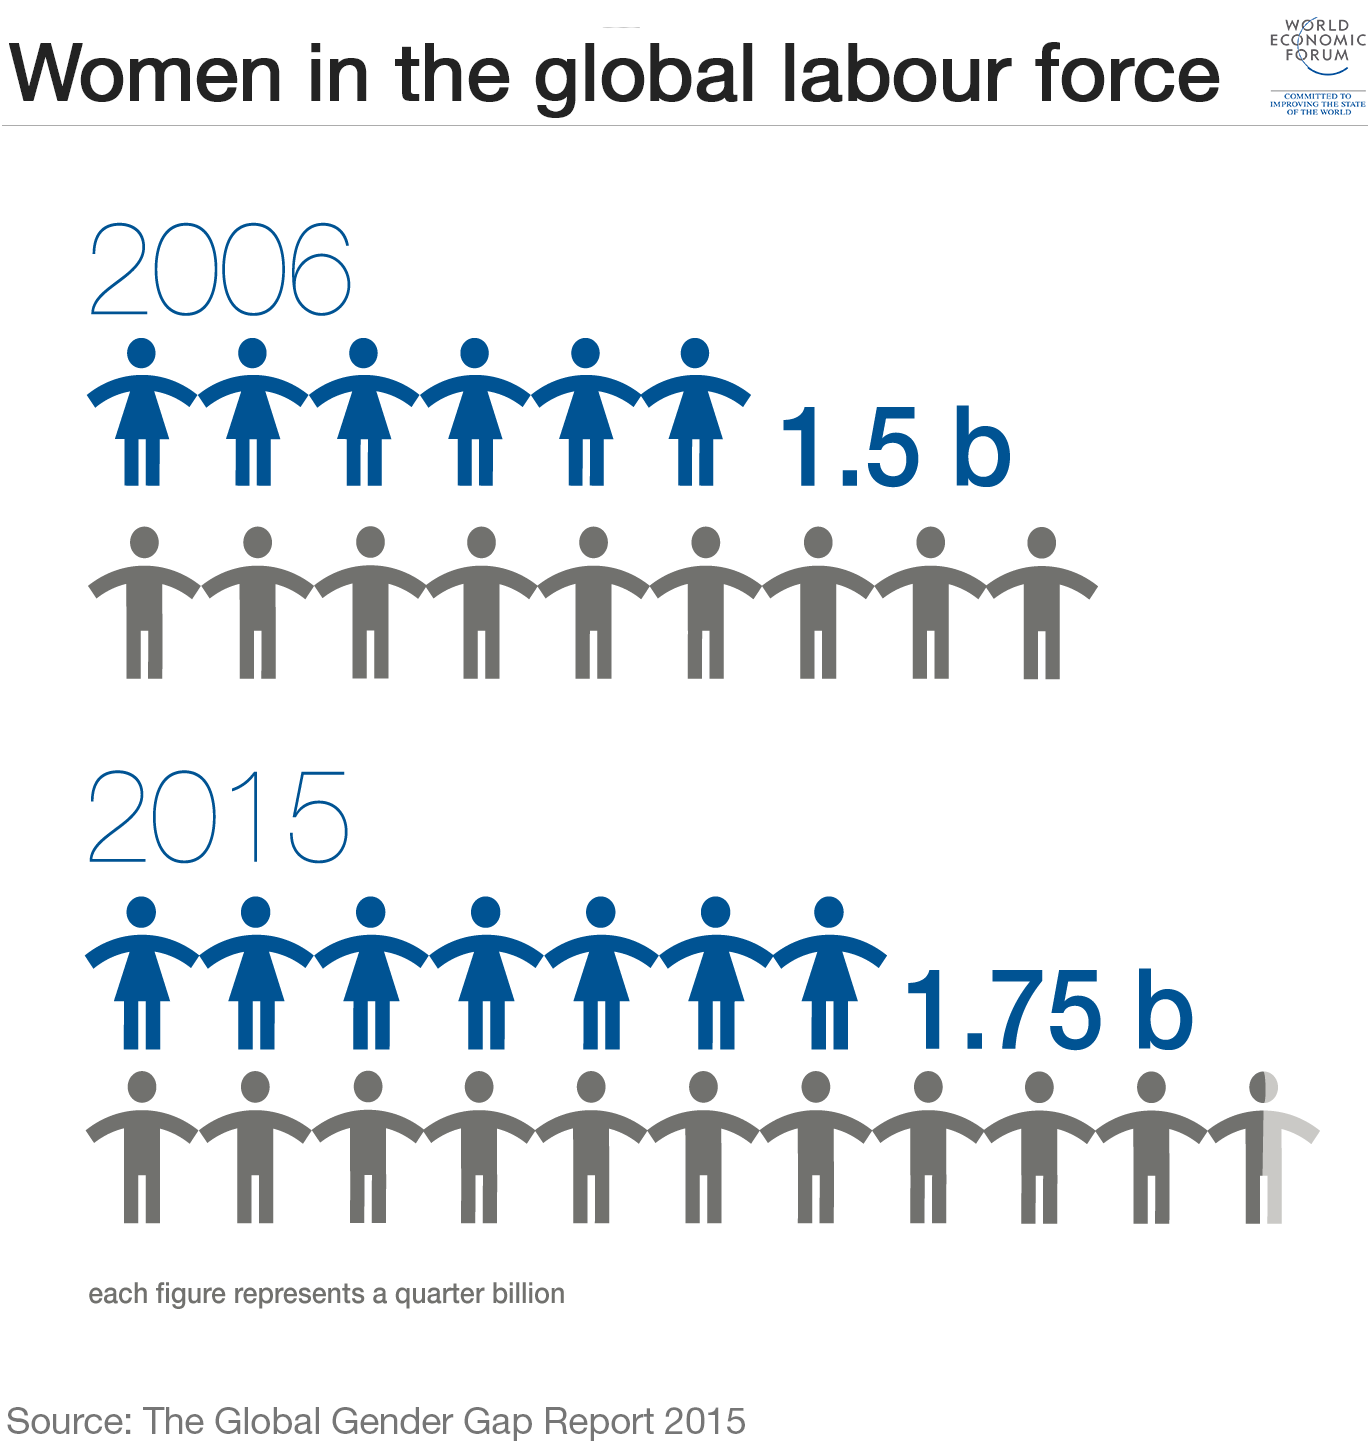 1_women-in-the-global-labour-force-gender-gap-equality.png